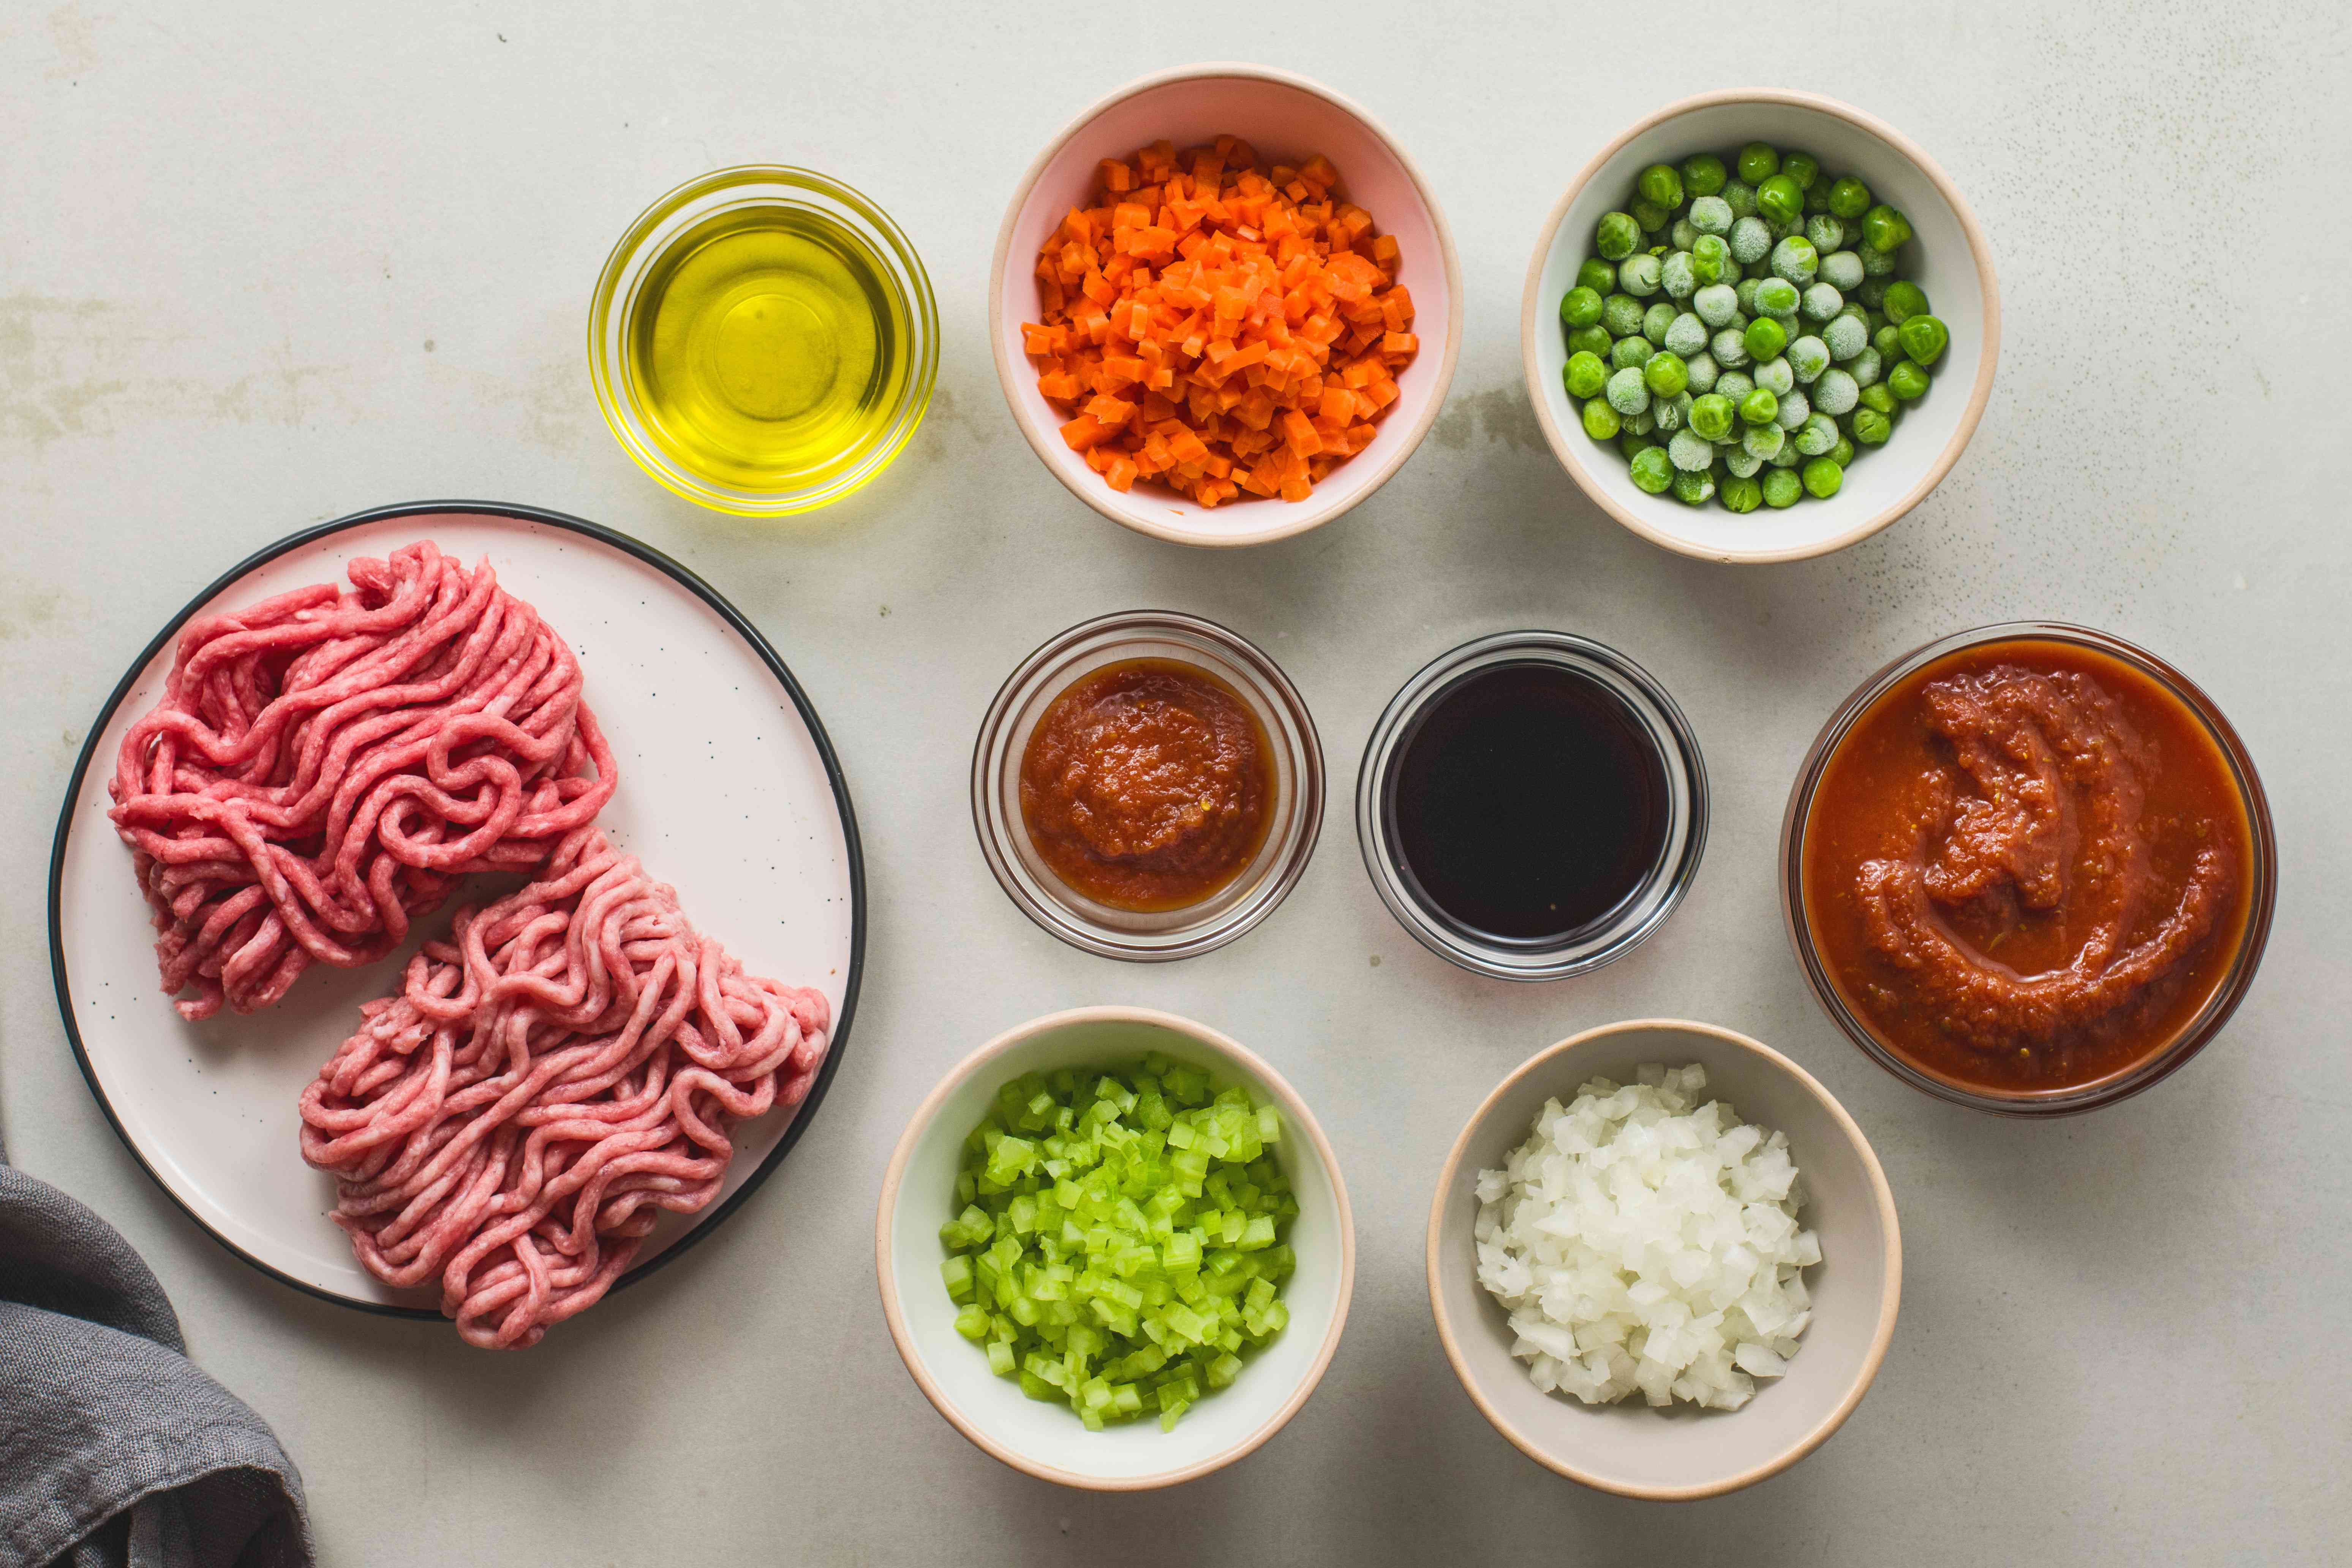 Ingredients for meat sauce